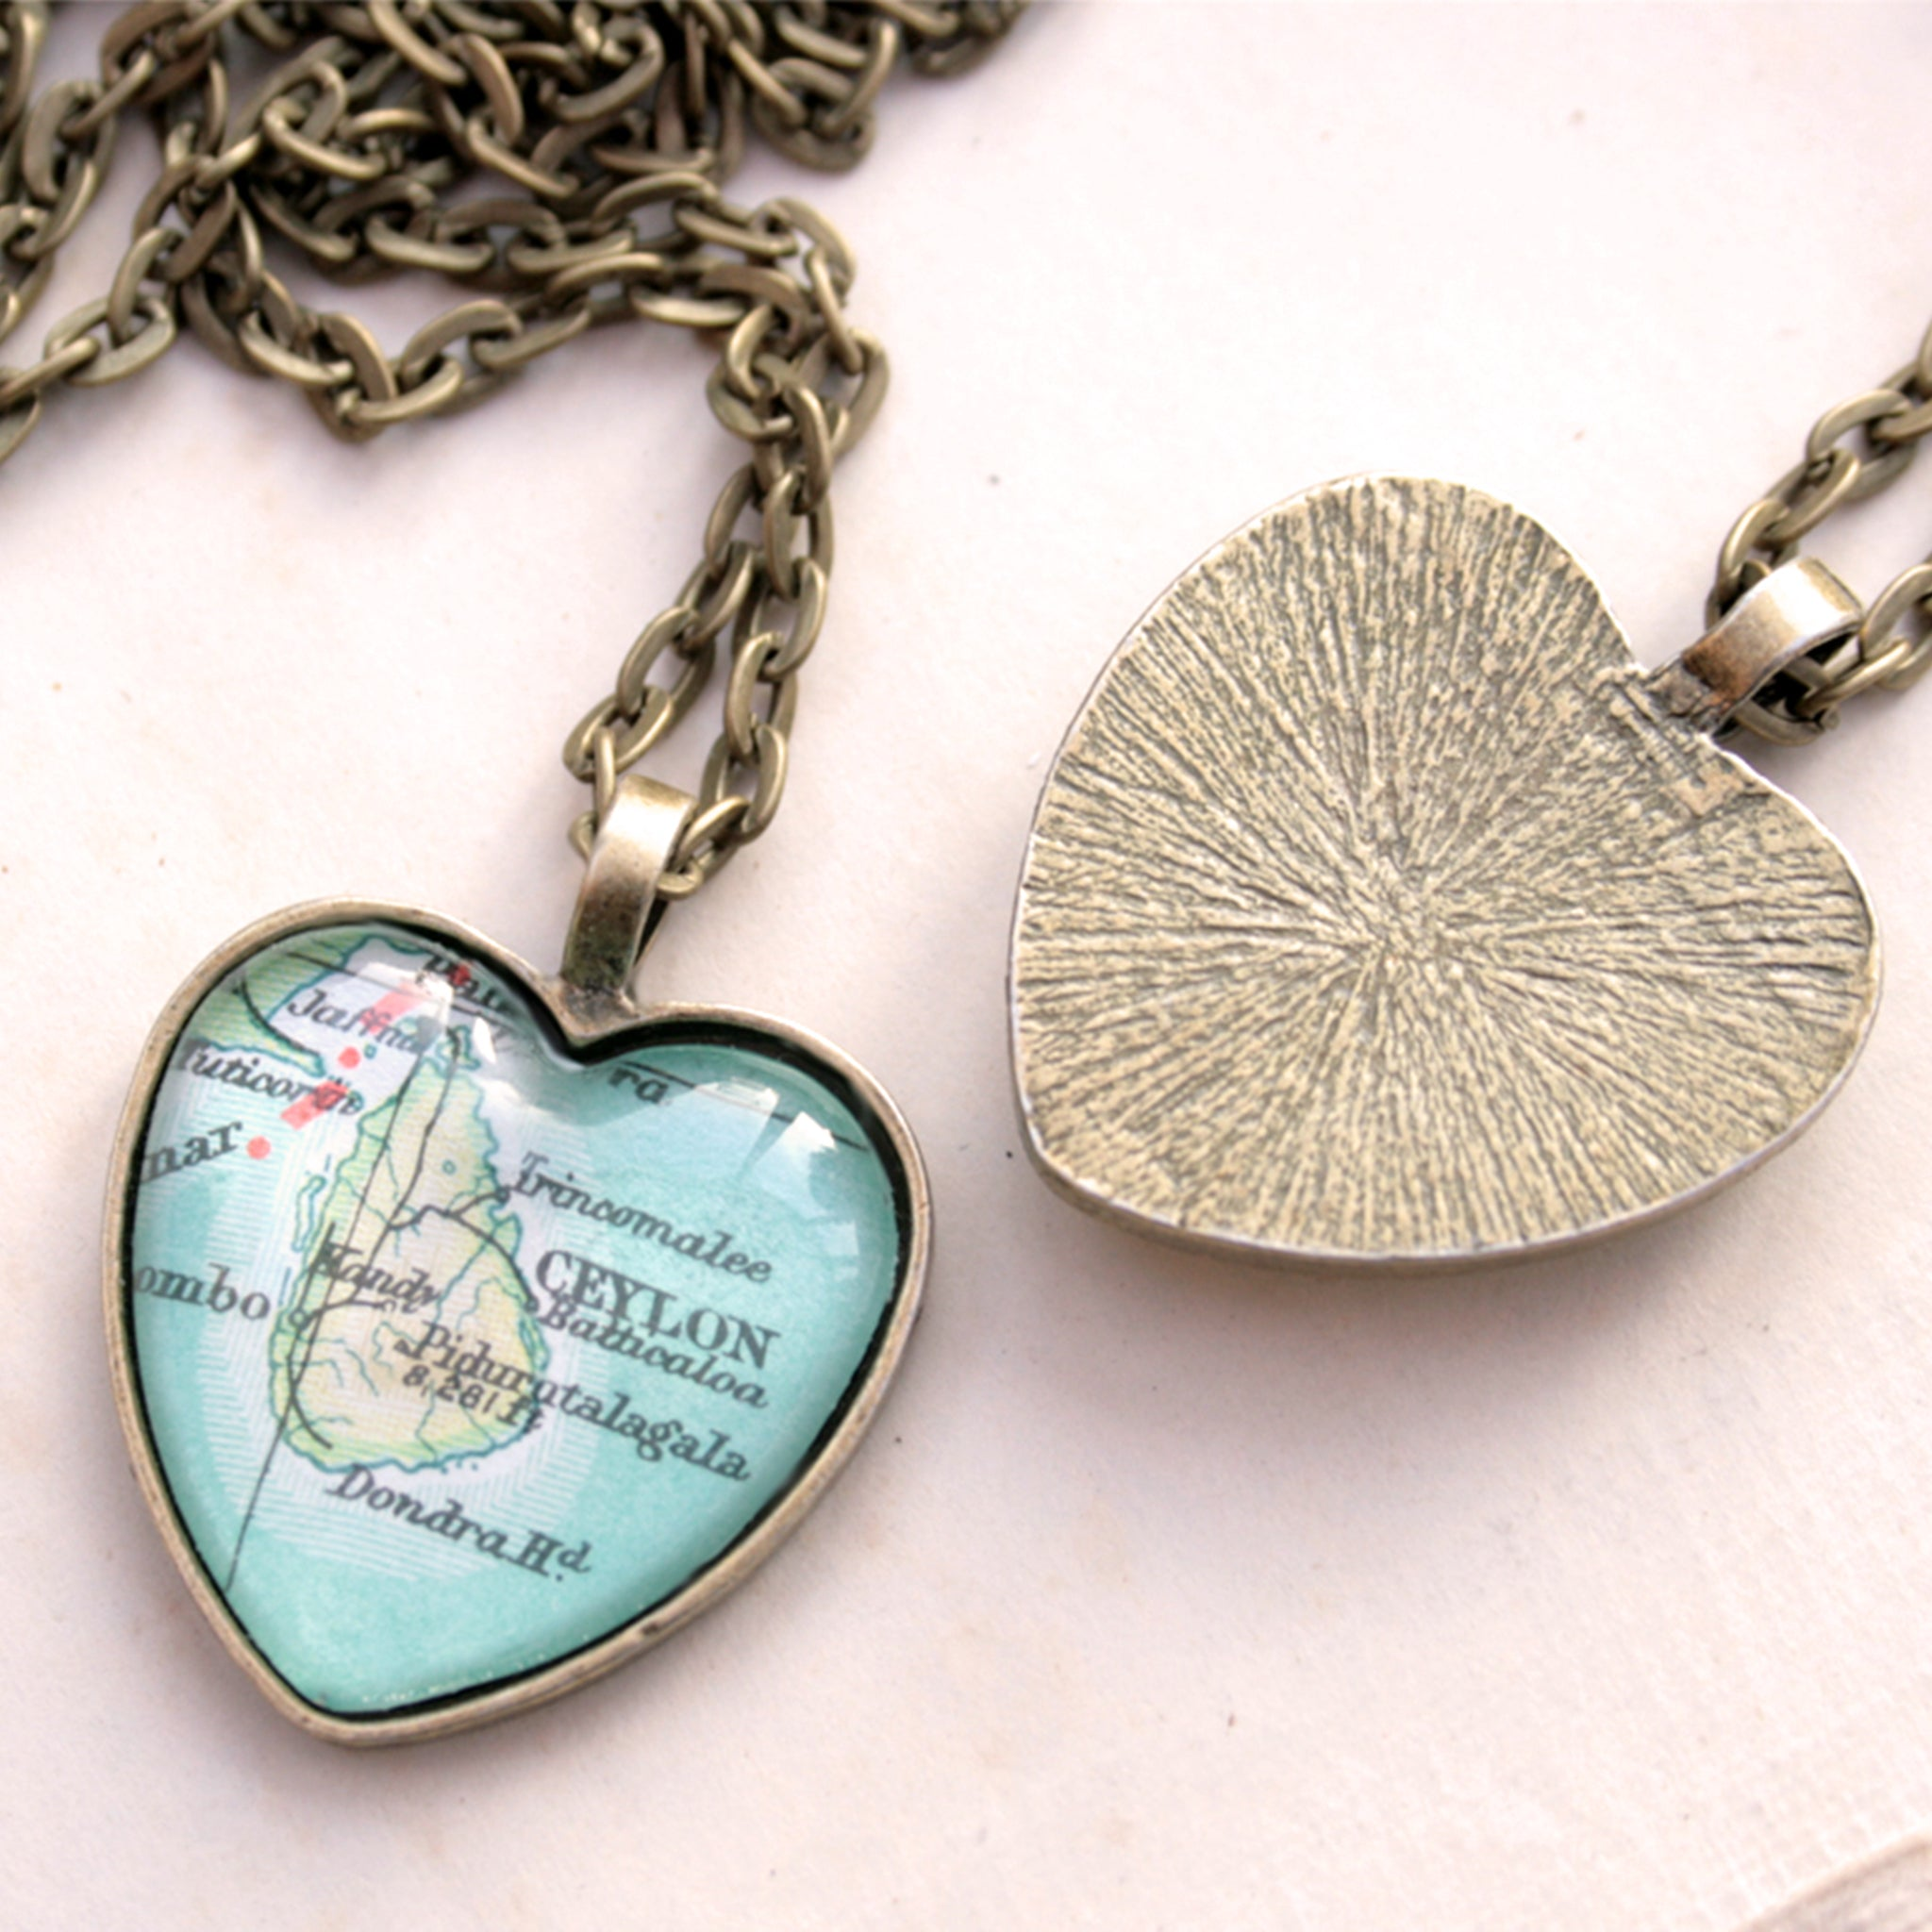 Heart shaped pendant necklace in bronze tone featuring map of Ceylon